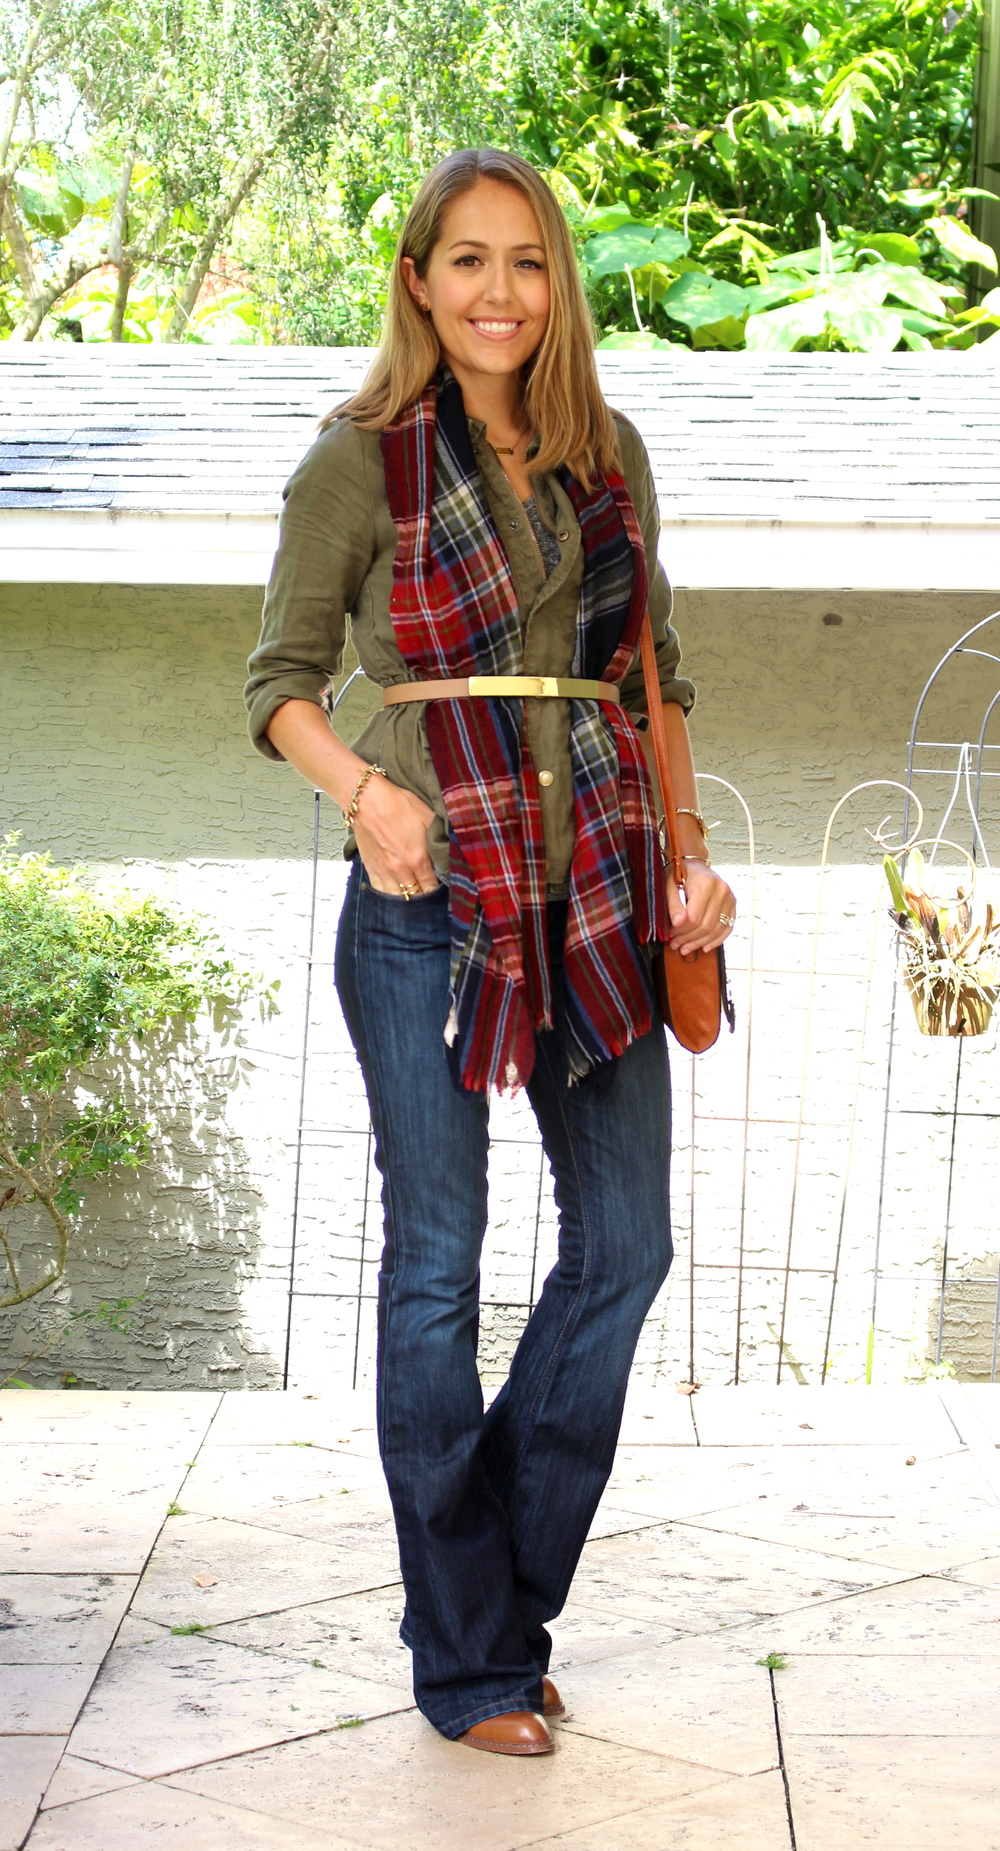 Army jacket, plaid scarf, flare jeans